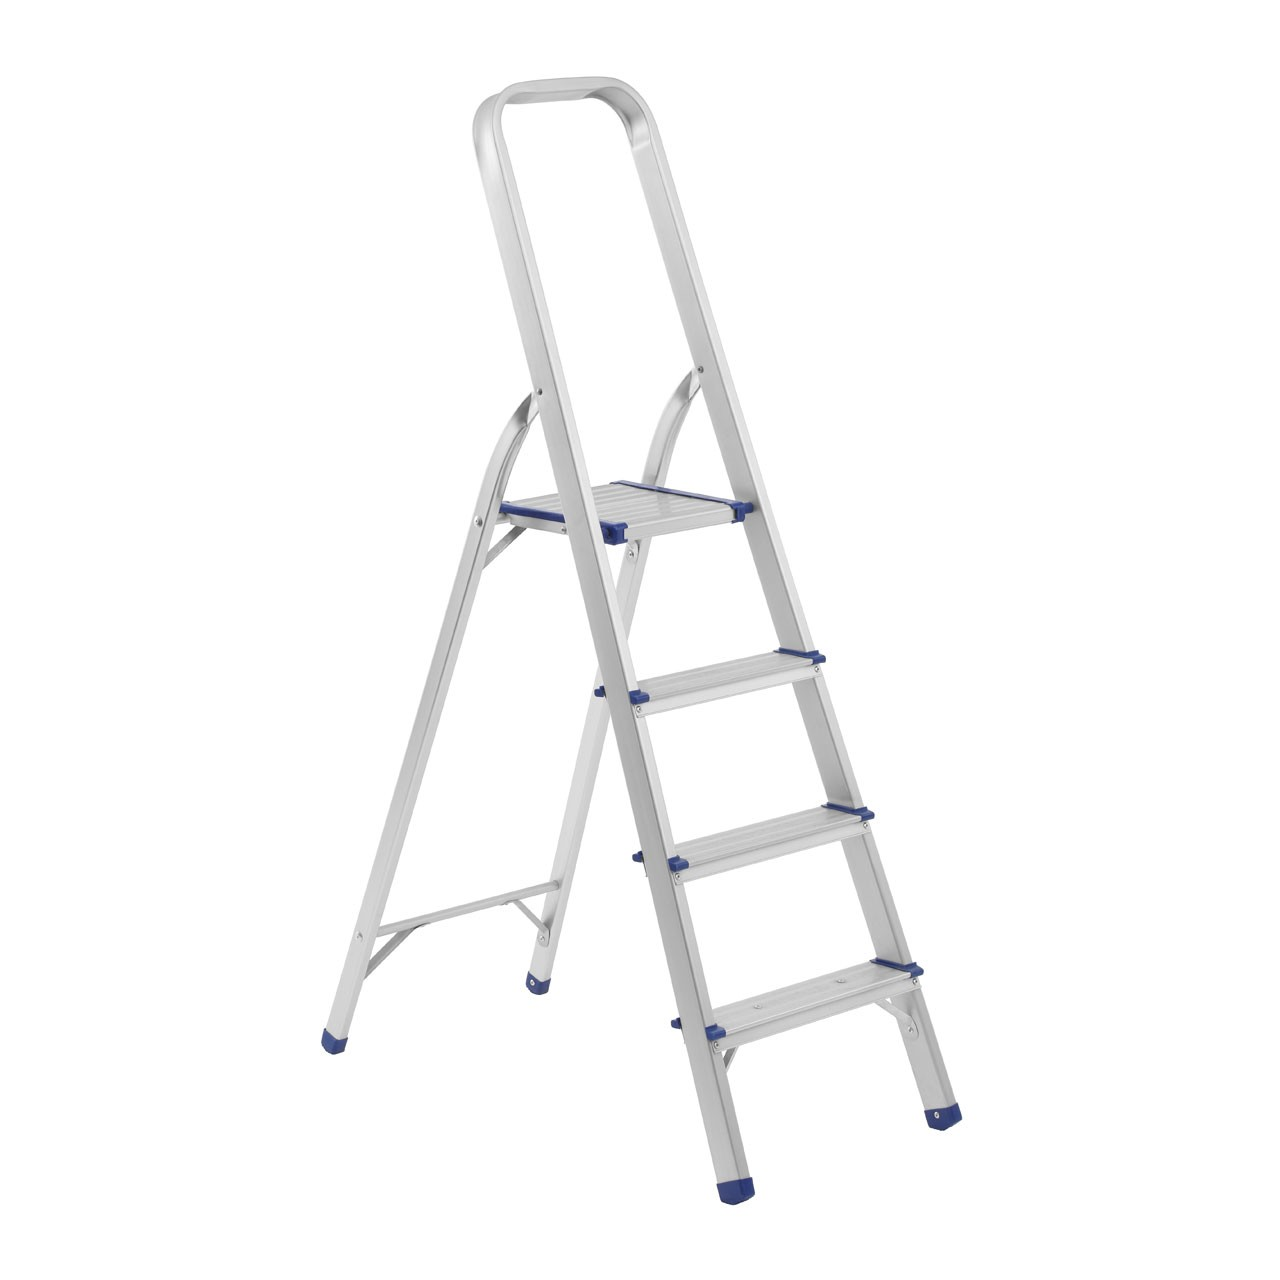 Prime Furnishing 4 Step Folding Ladder, Aluminium